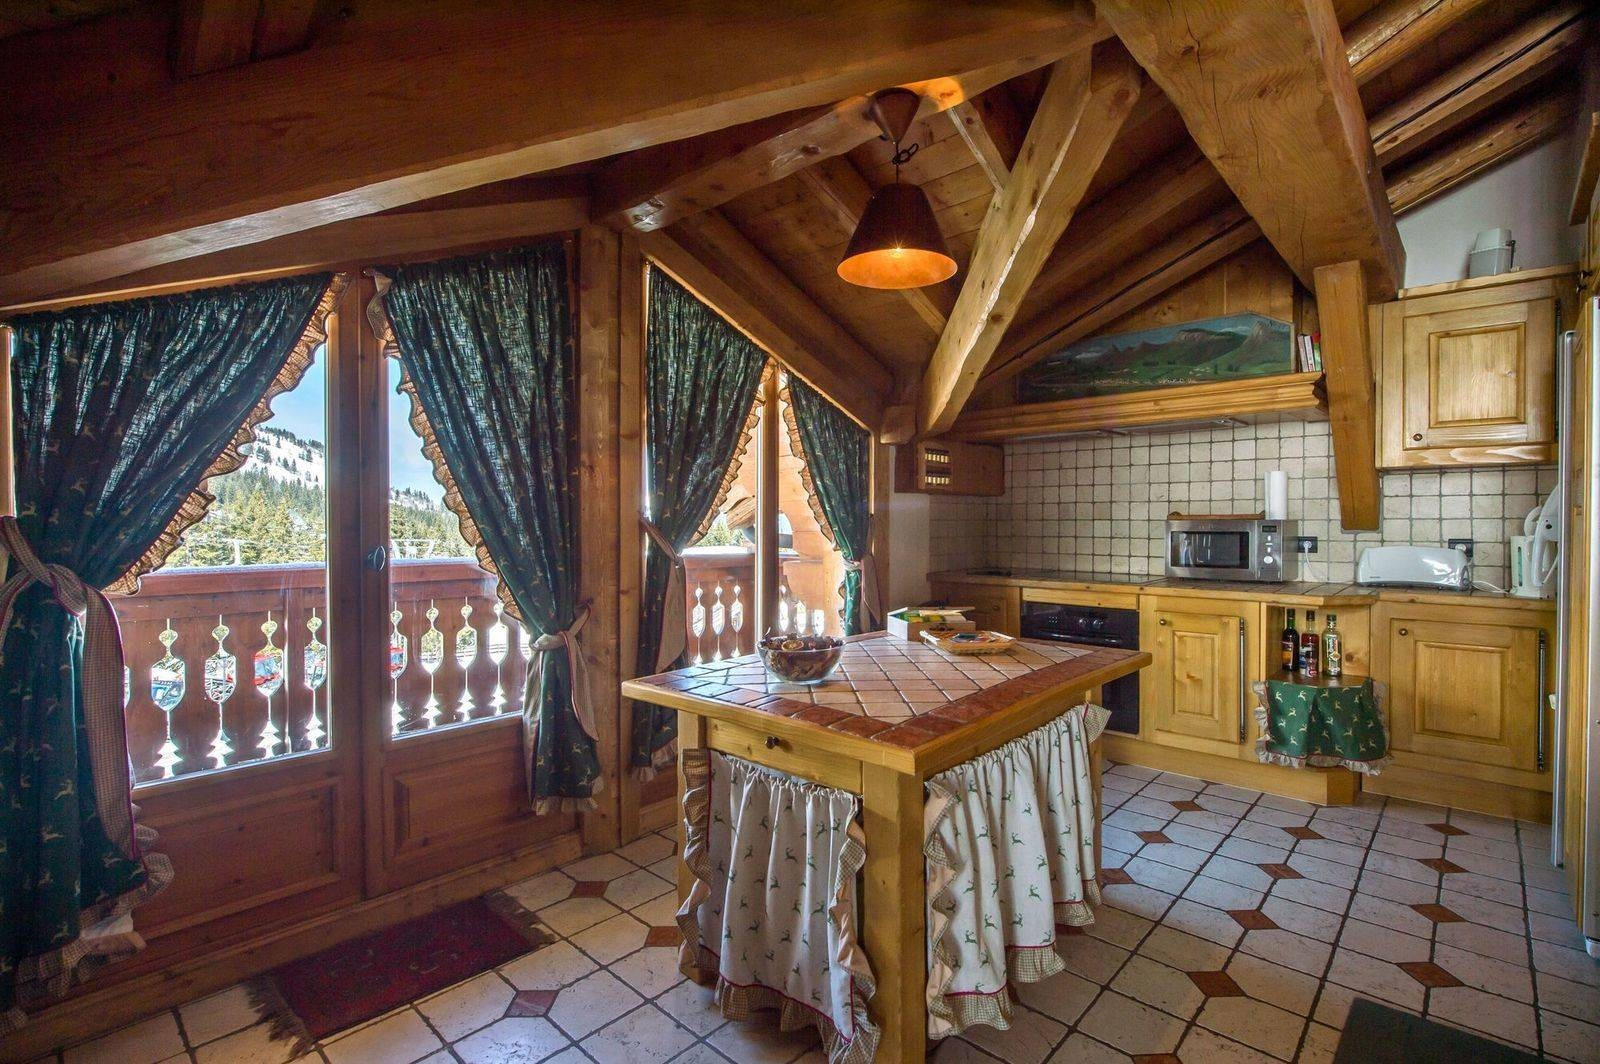 Courchevel 1850 Location Chalet Luxe Tantalite  Cuisine